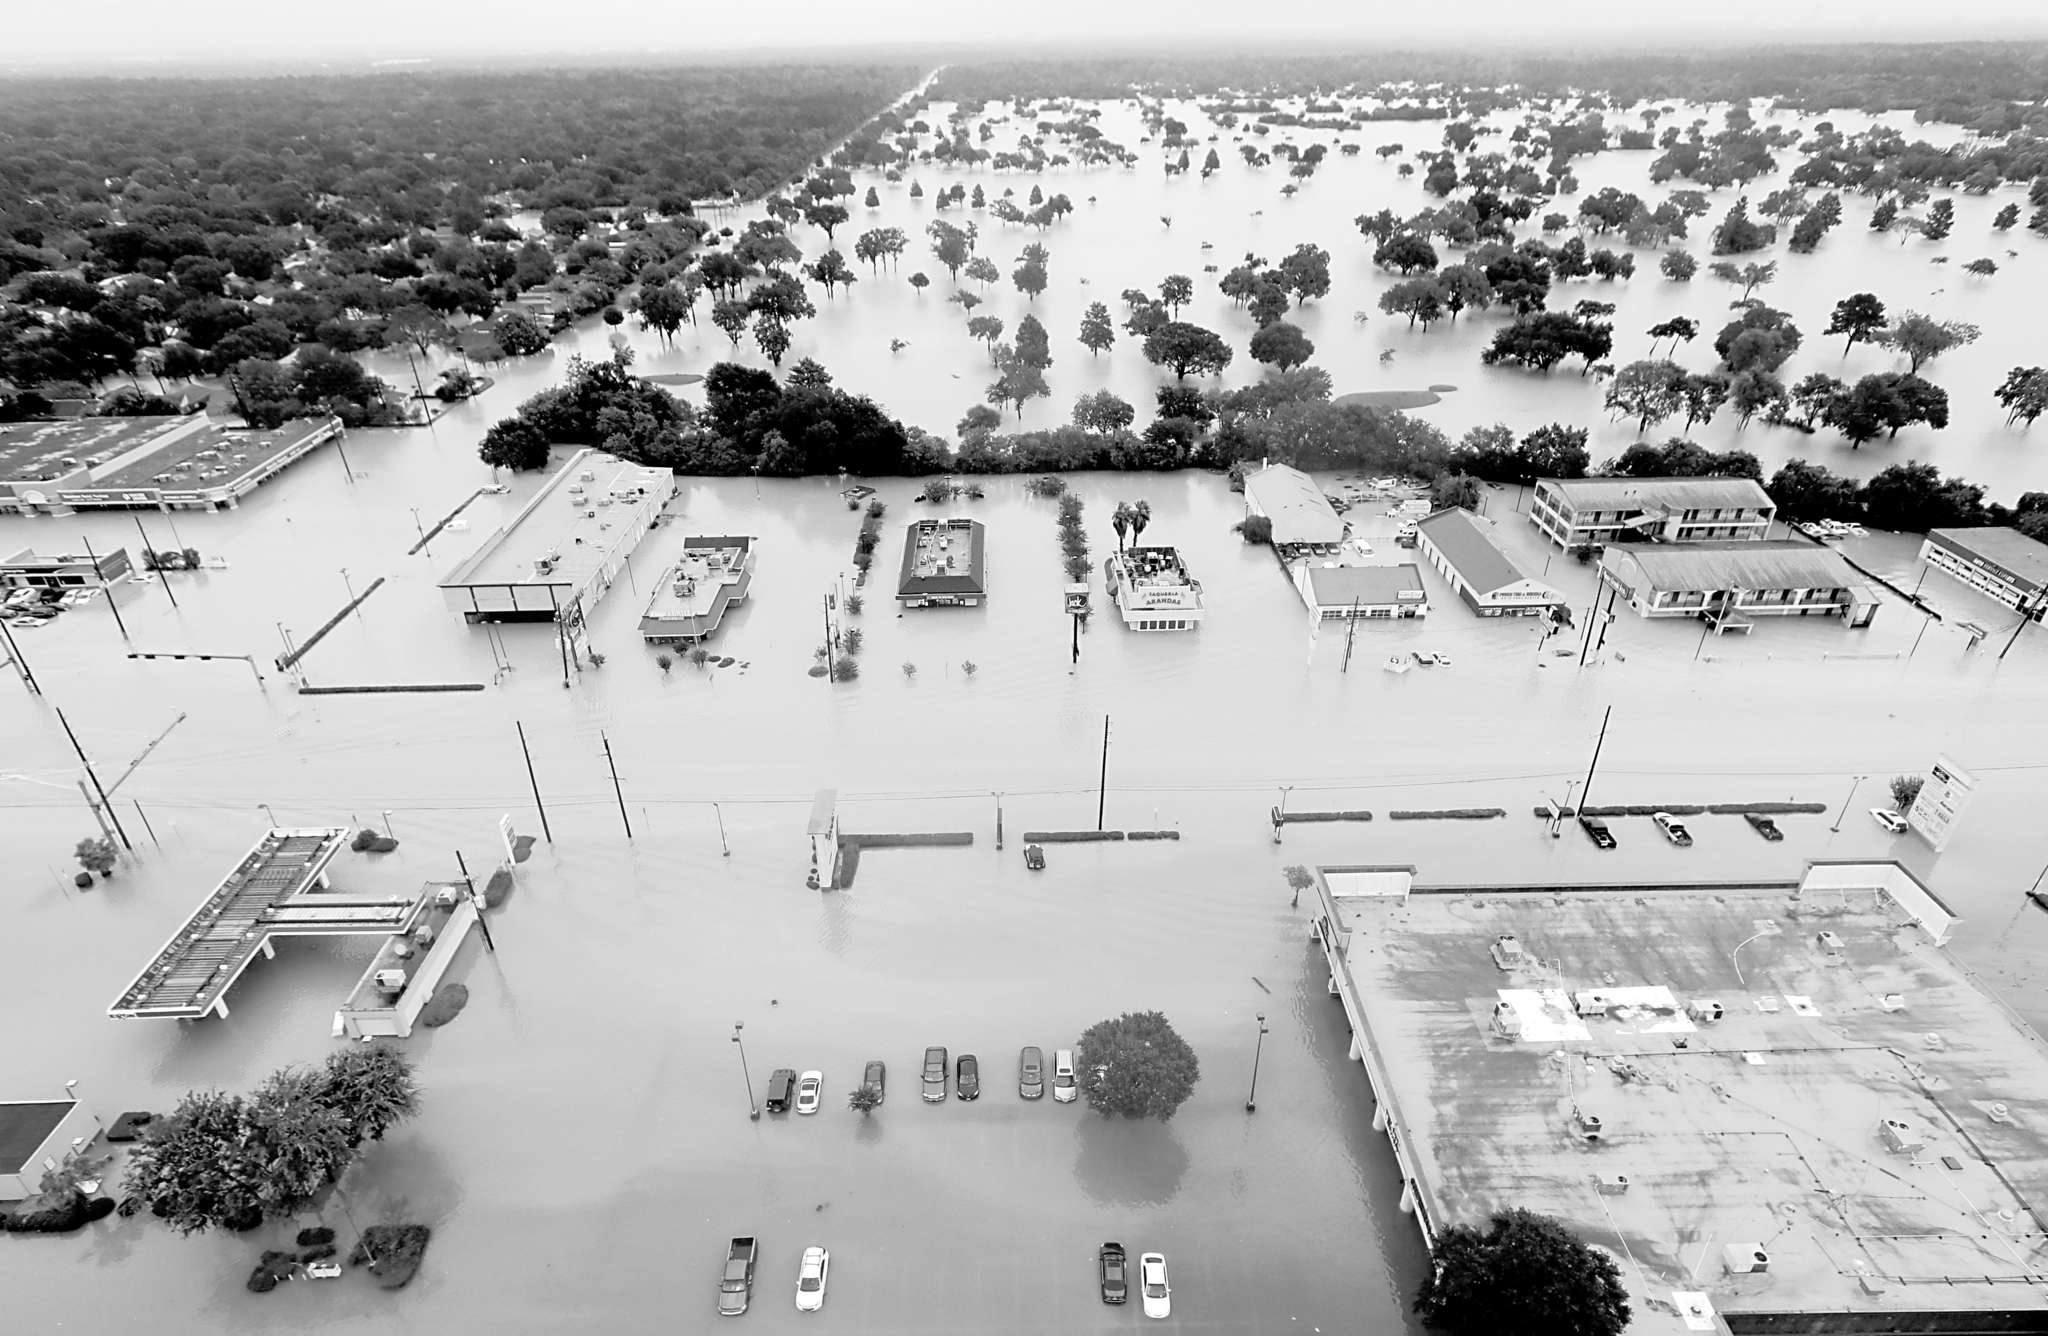 Hurricane Harvey left Houston neighborhoods flooded. Business owners have only just started assessing the damage.